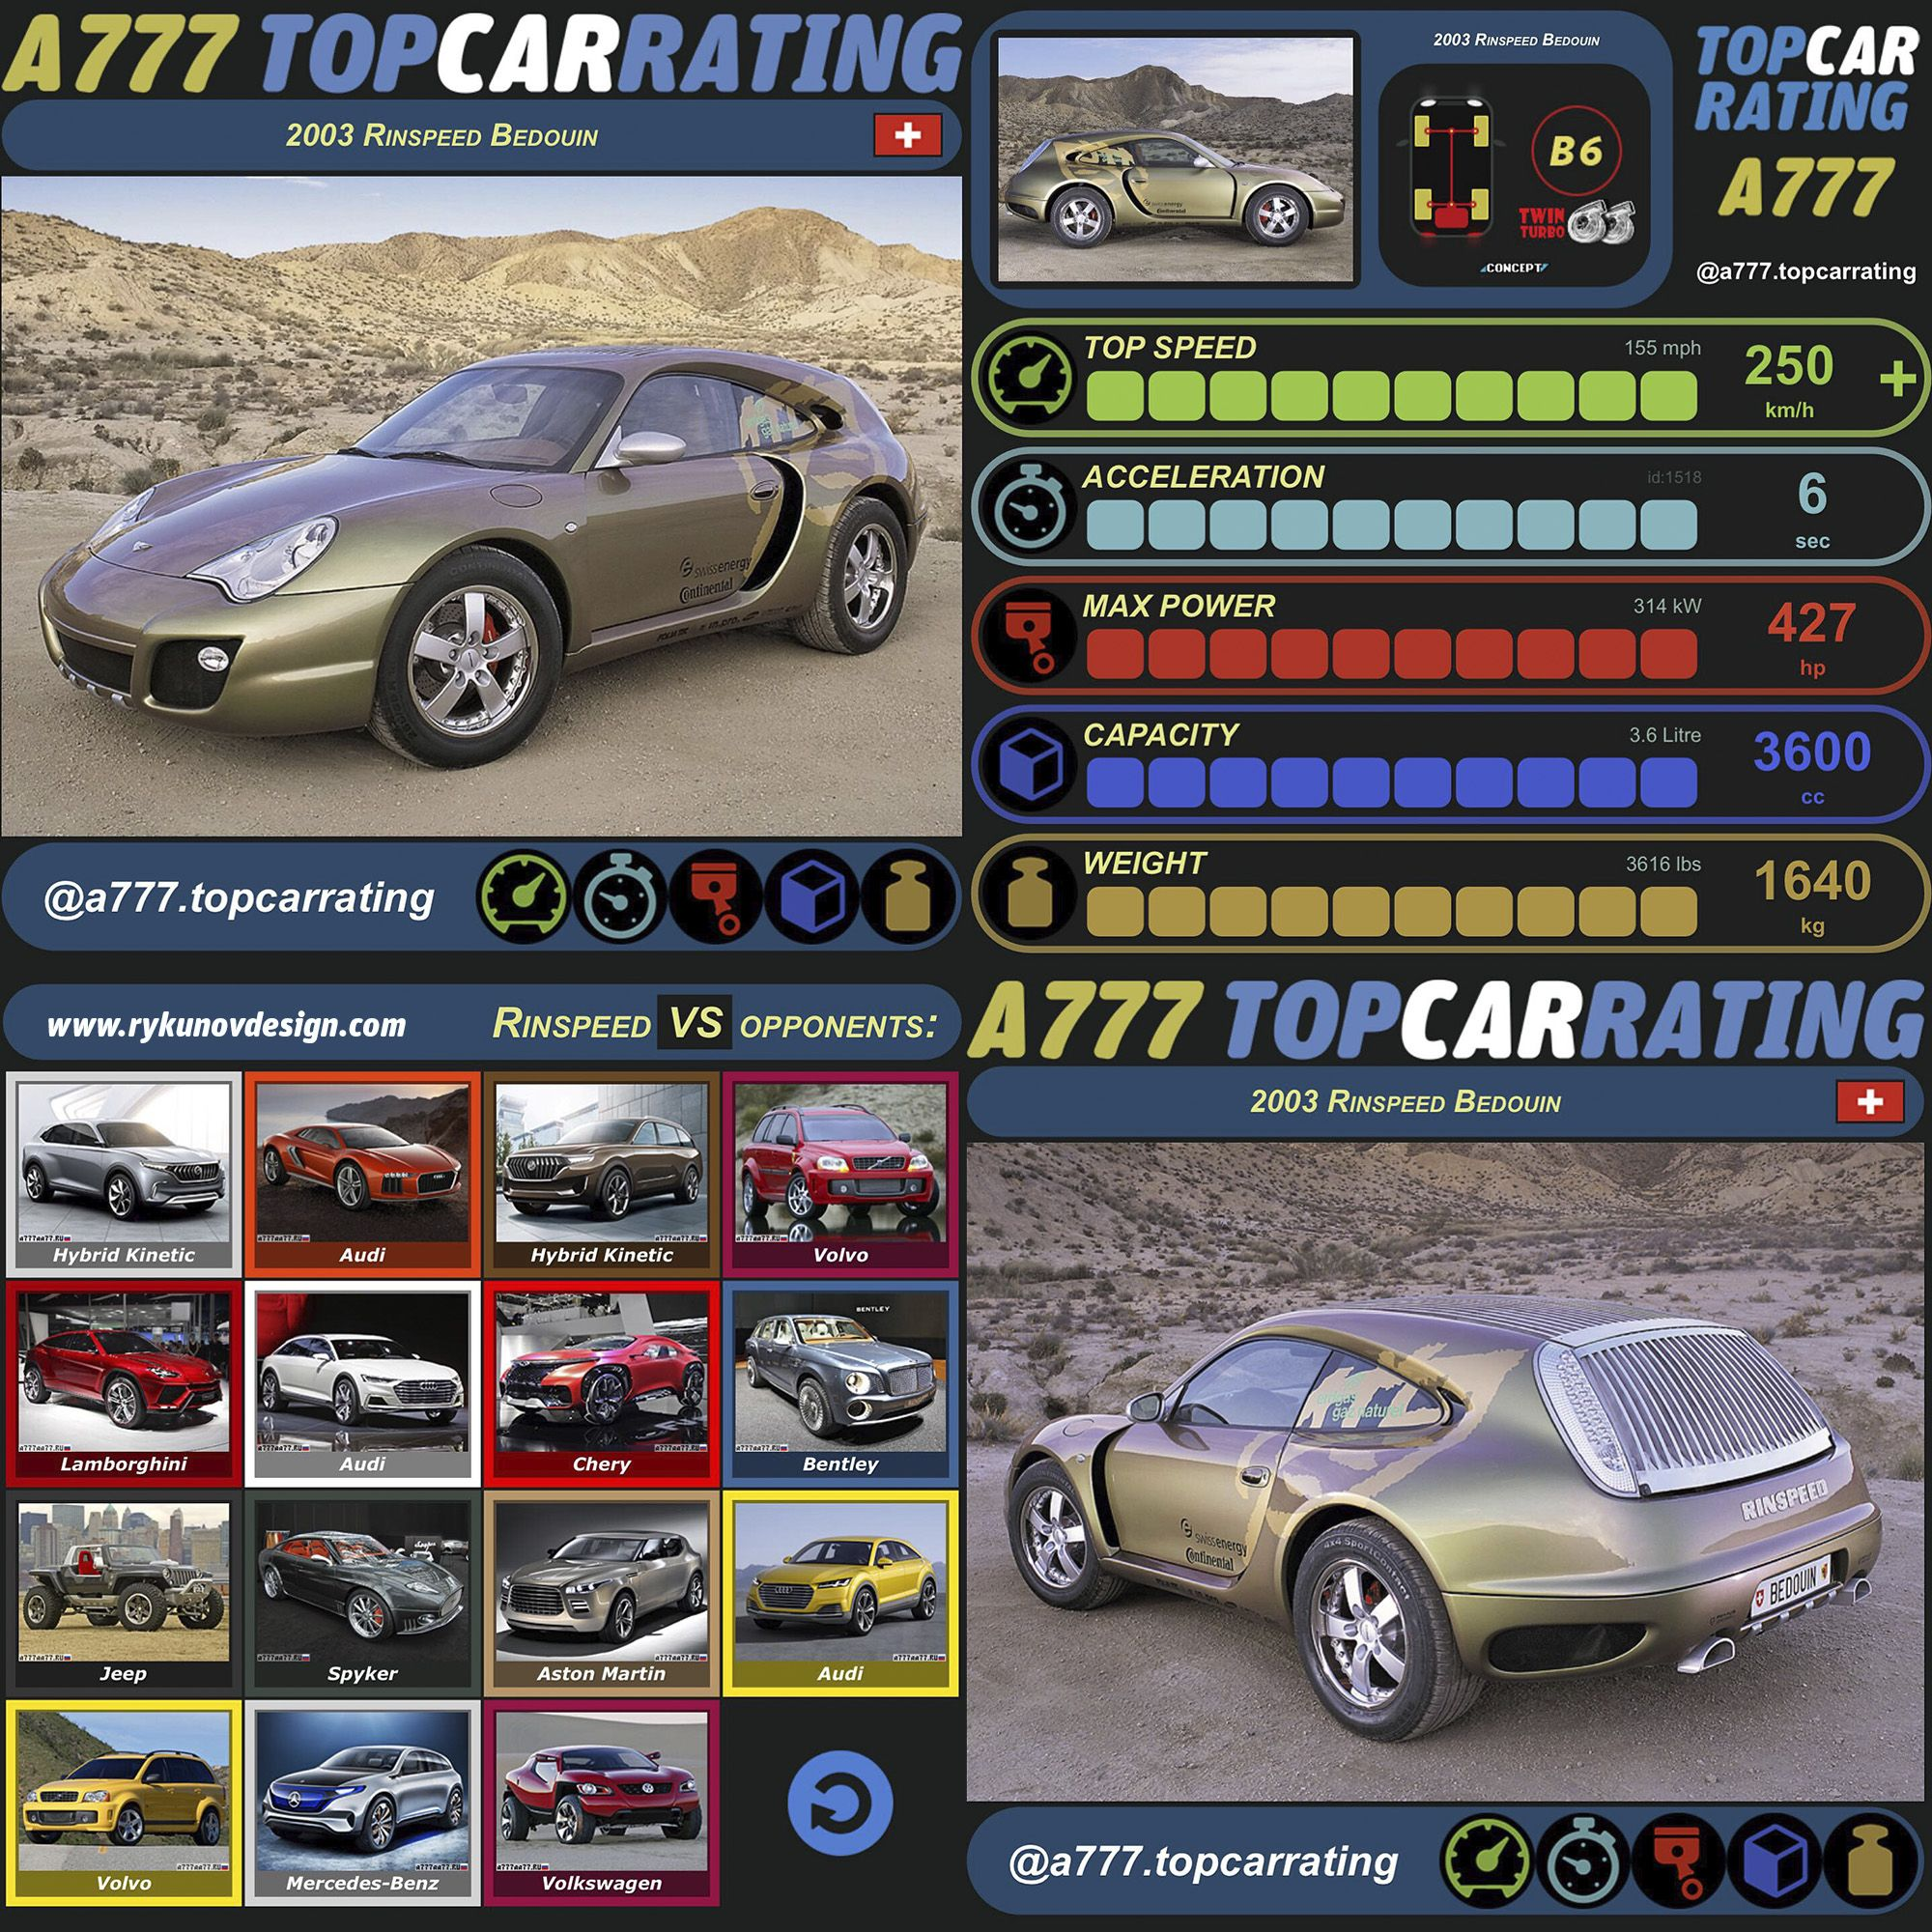 2003 rinspeed bedouin in 2020 super cars acceleration sports cars pinterest